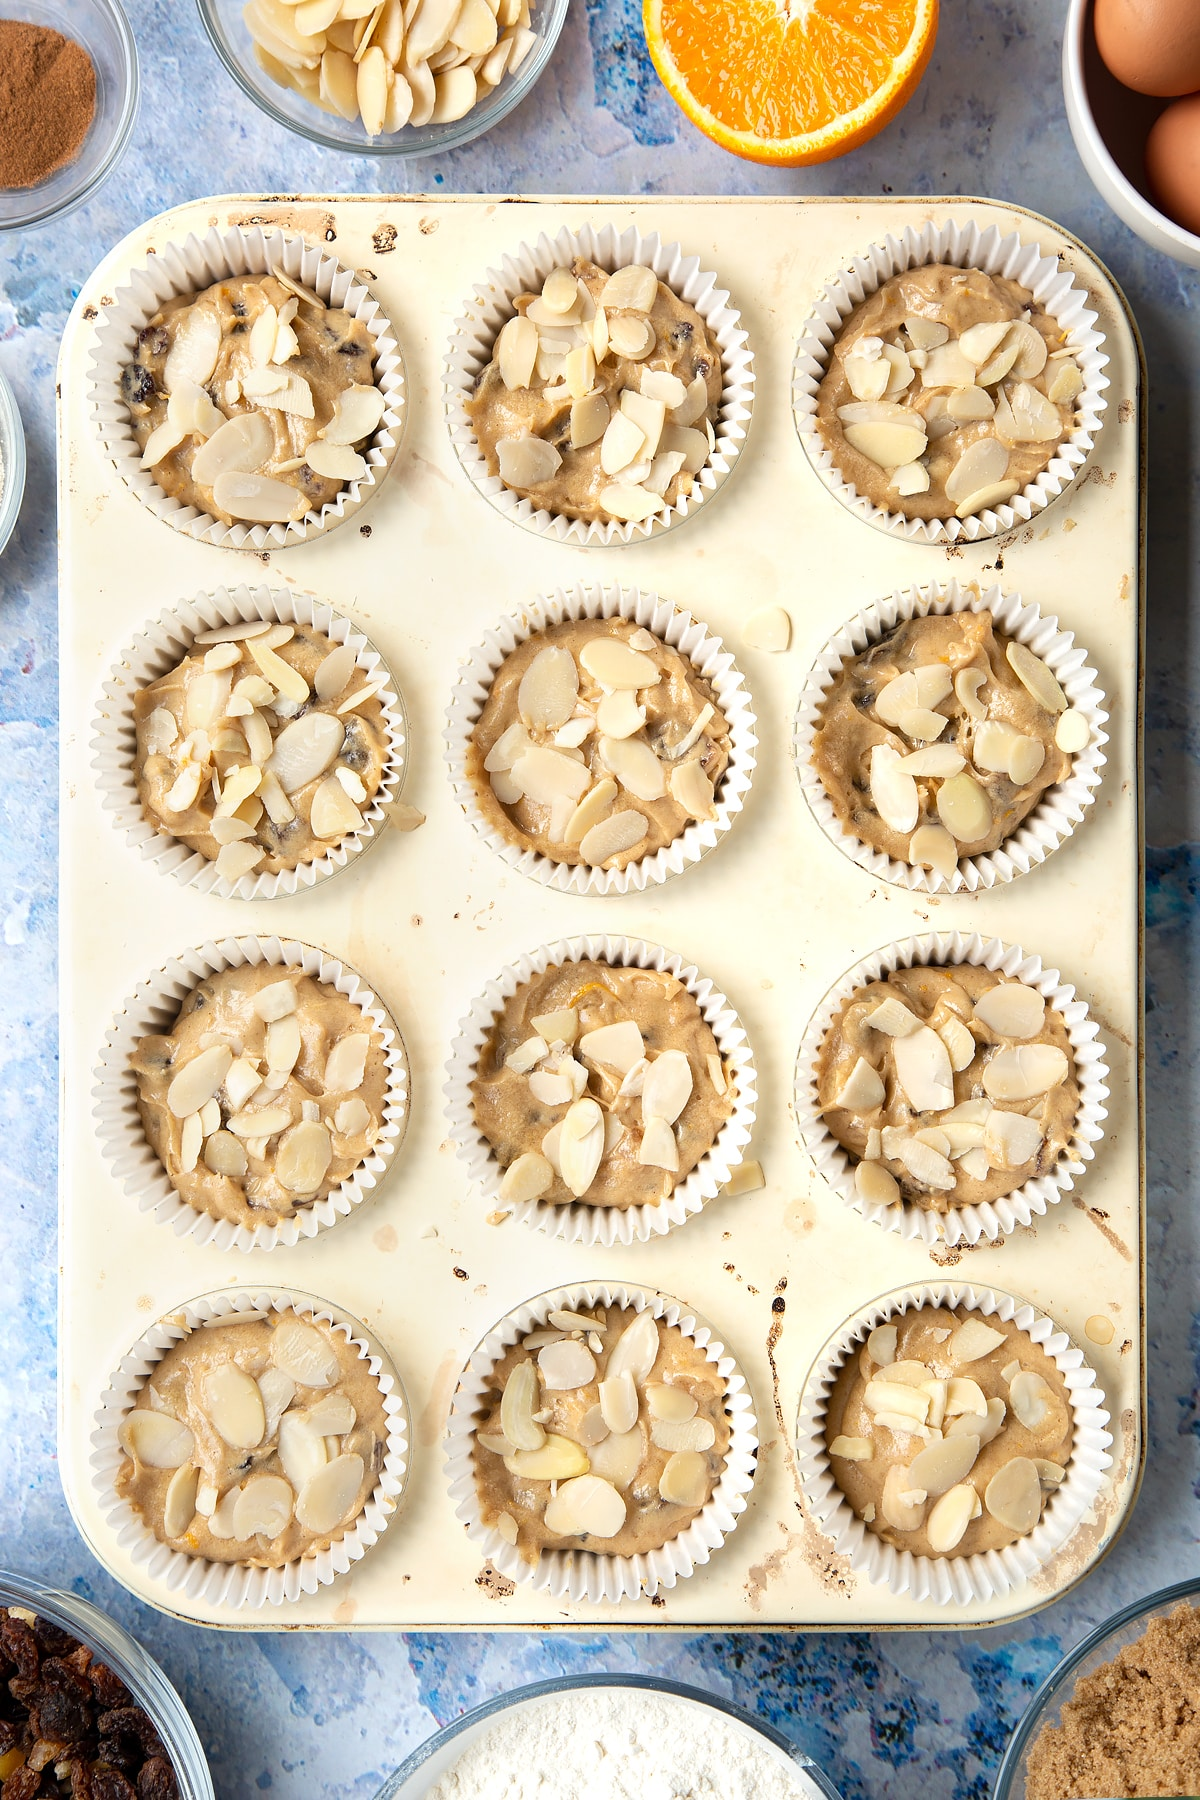 Overhead shot of orange and cinnamon muffin mix topped with flaked almonds in a muffin tray